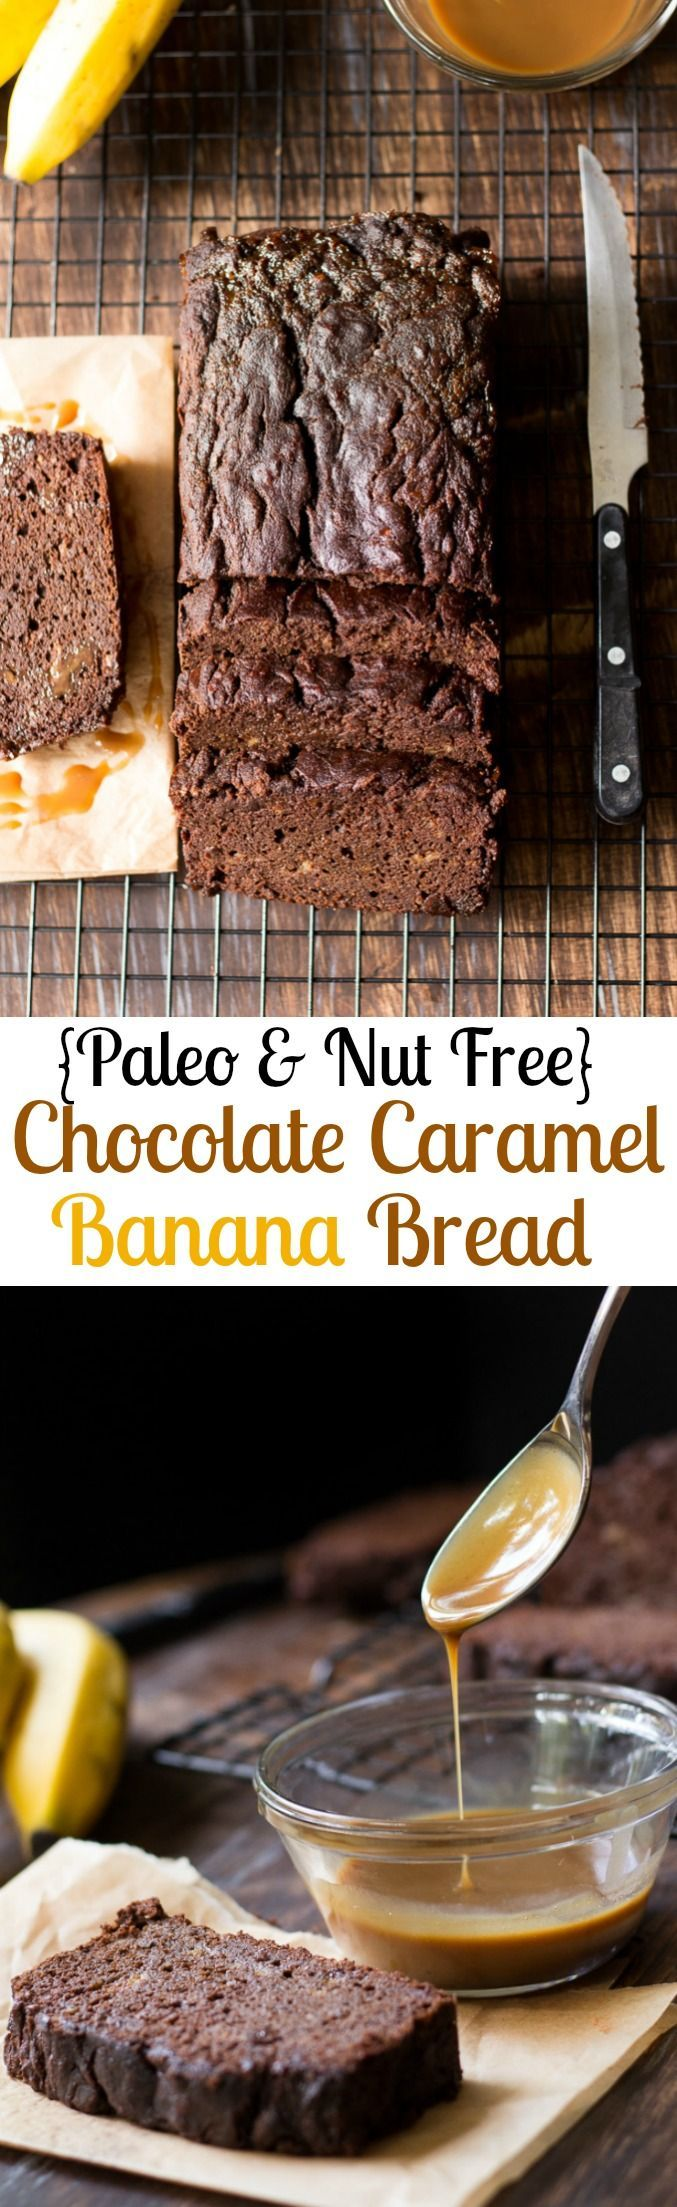 1000+ images about Paleo on Pinterest | Banana fruit, Vegans and Grain ...